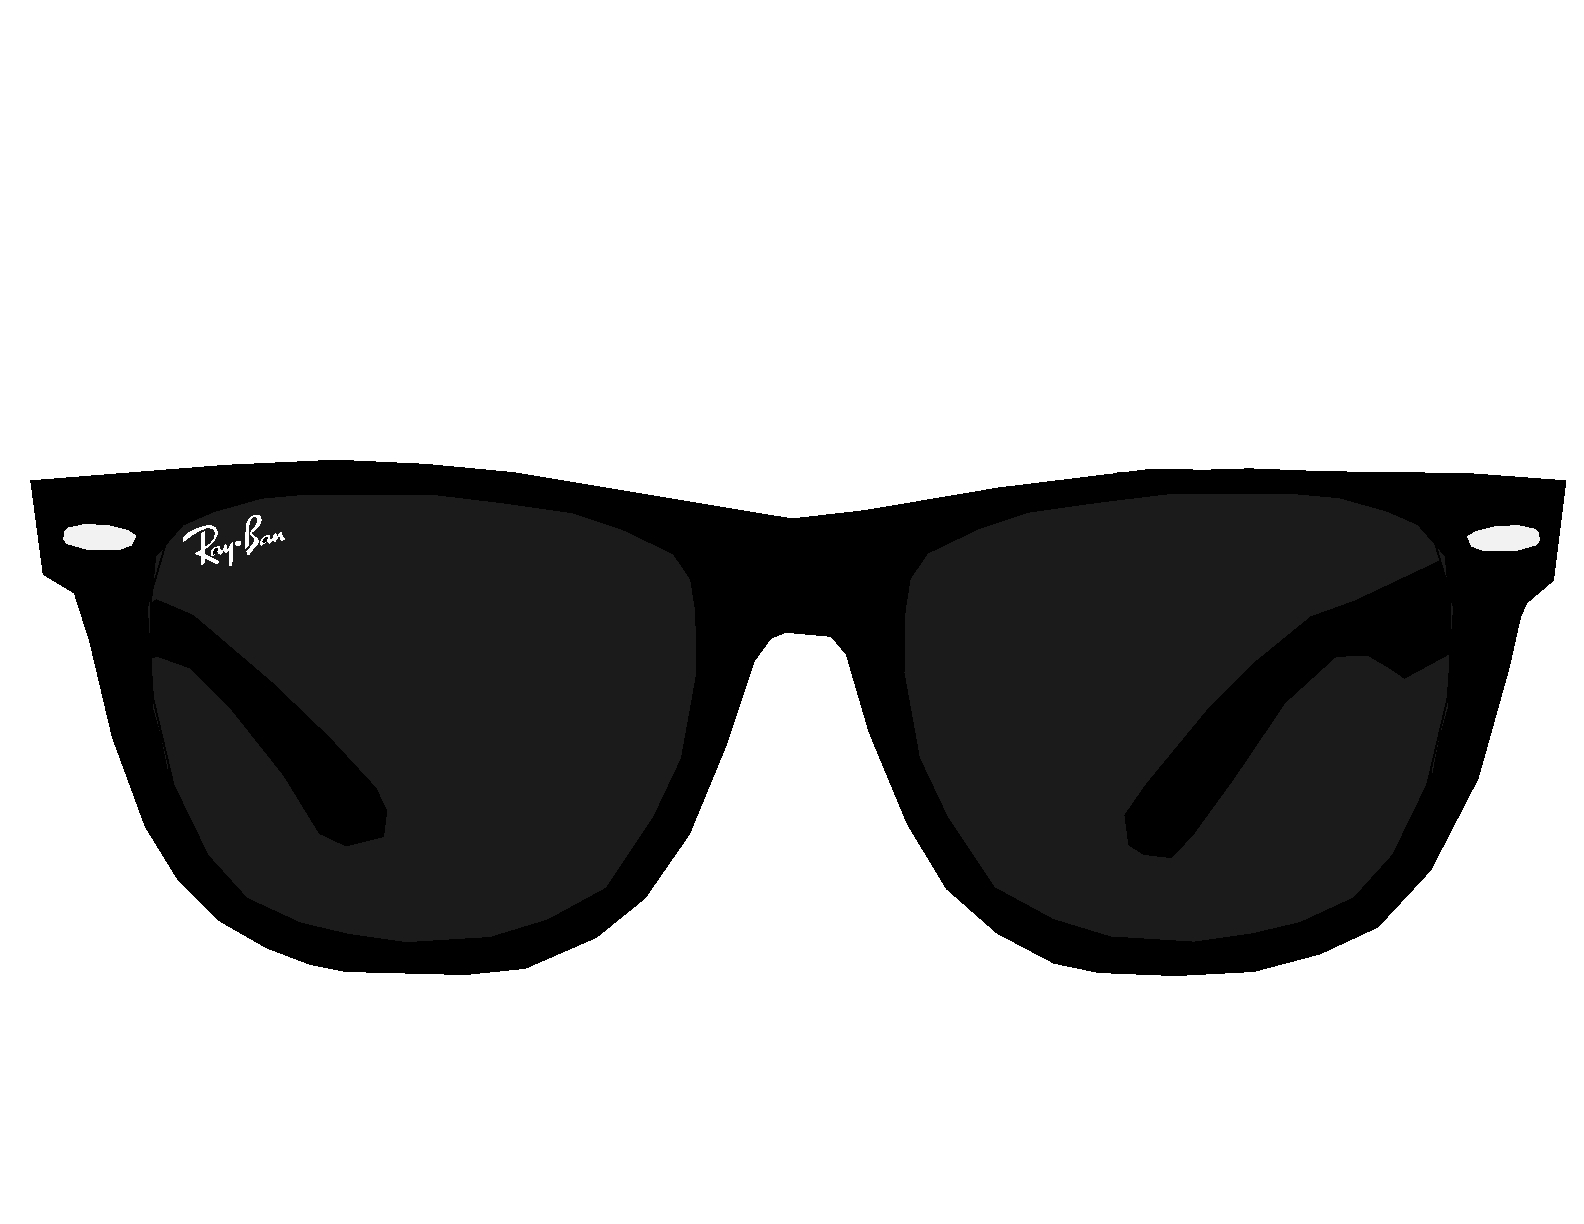 Ray Ban Sunglasses Drawing Images Pictures.